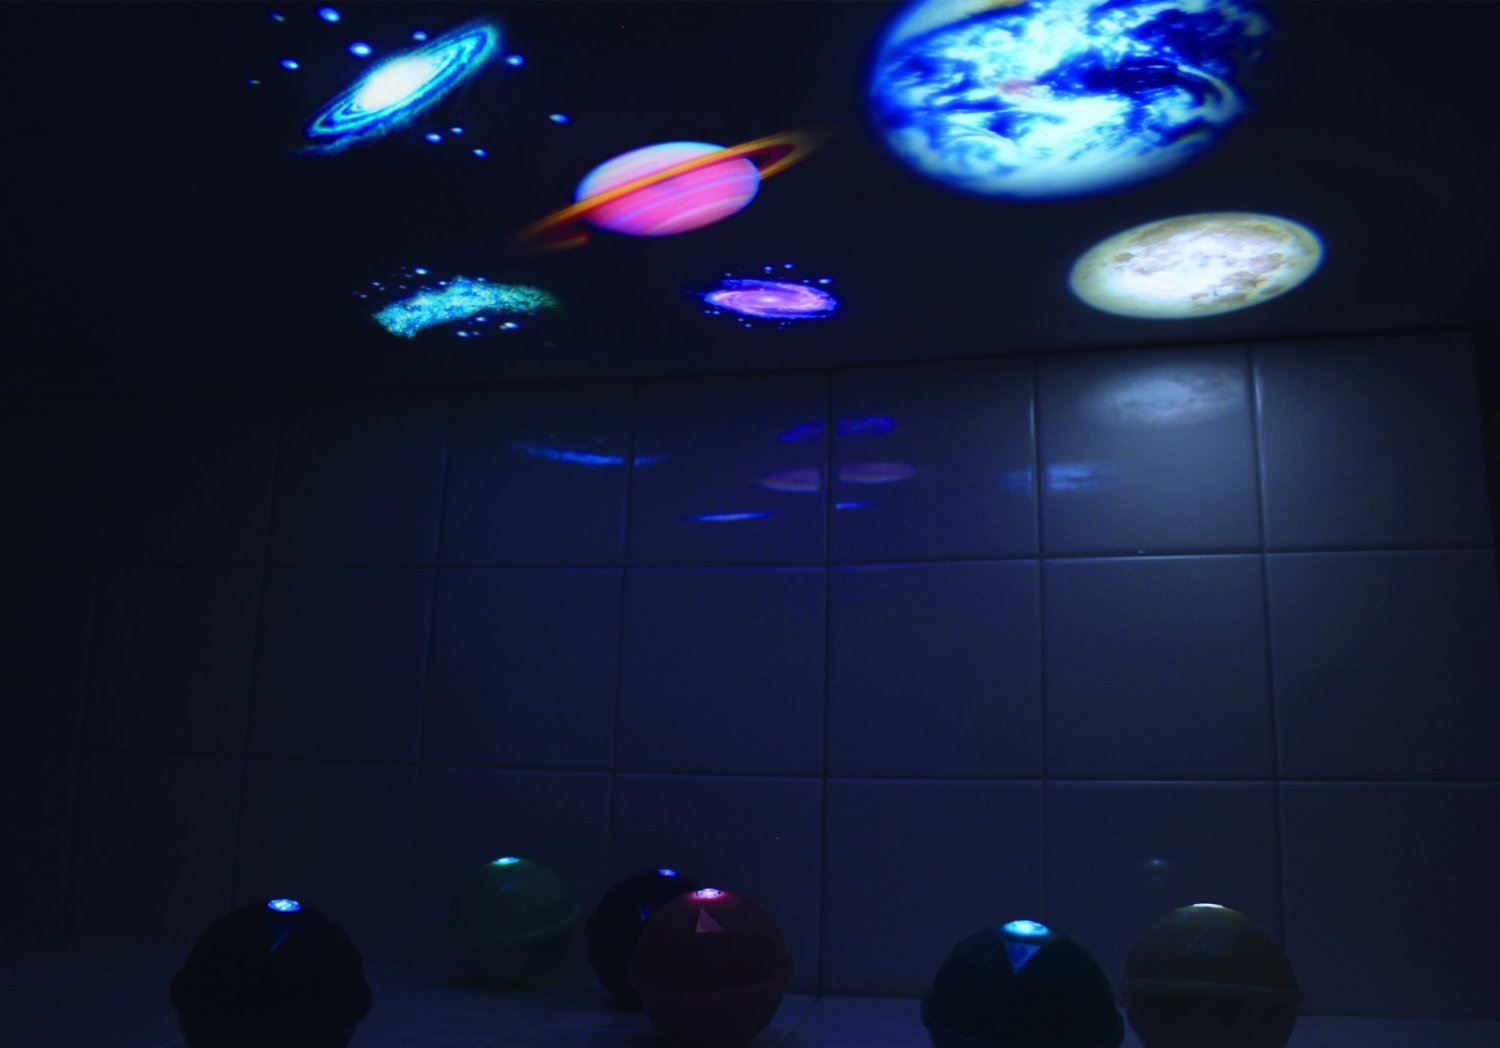 solar system projection night light -#main